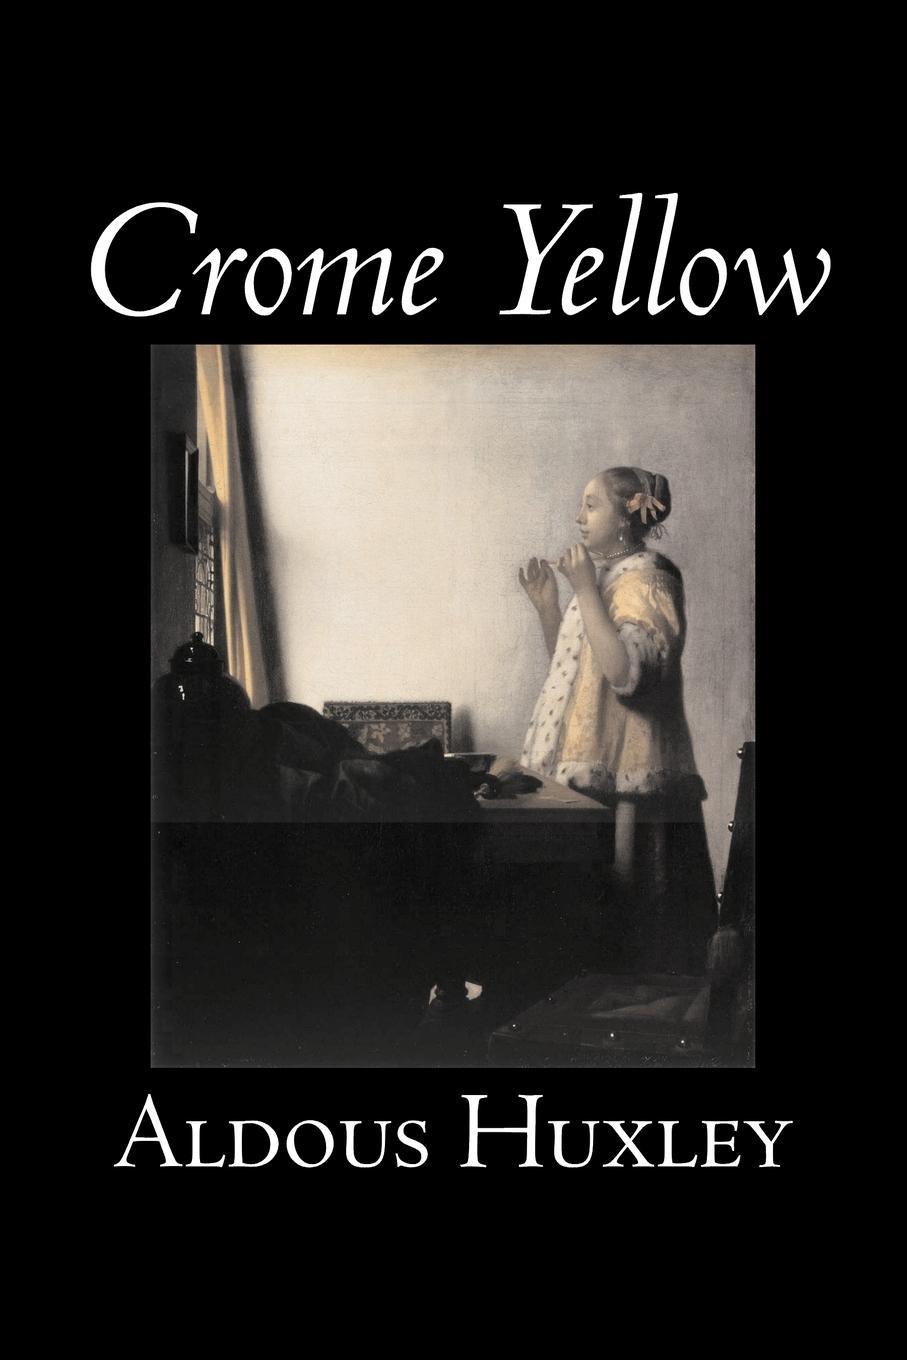 Aldous Huxley Crome Yellow by Aldous Huxley, Science Fiction, Classics, Literary doris dier the motifs of utopia and dystopia in aldous huxley s brave new world